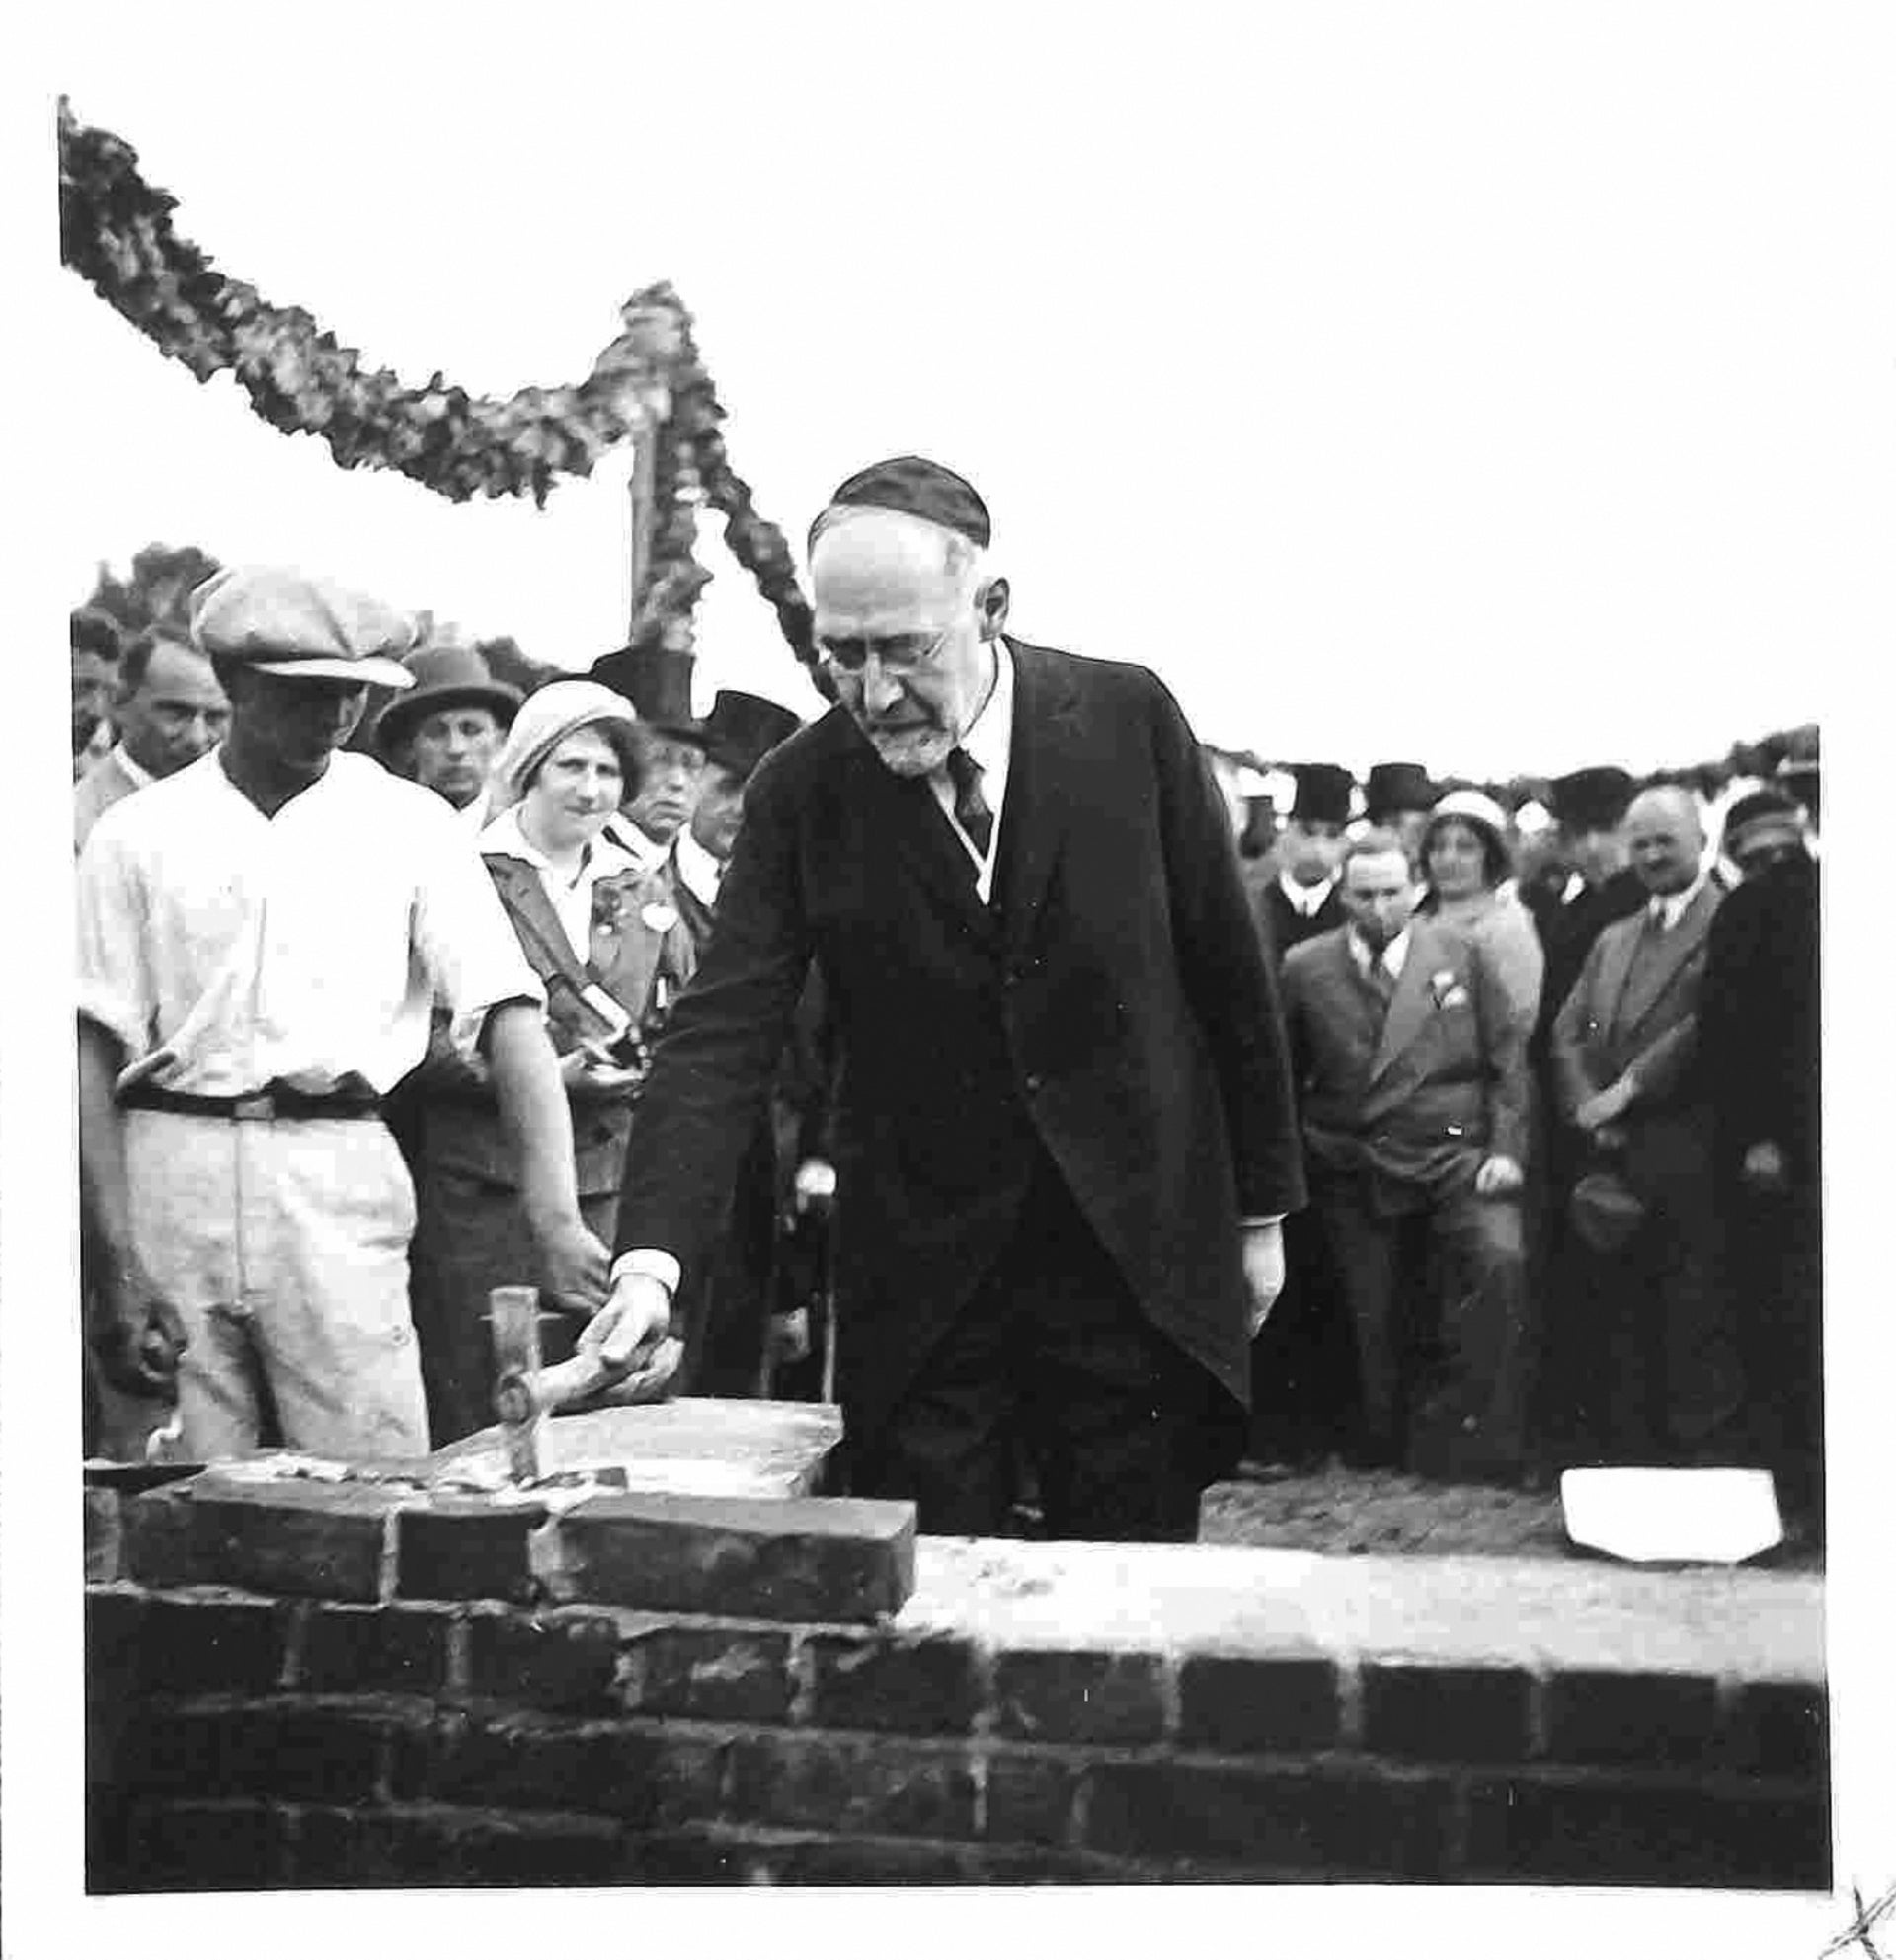 Rabbi Leo Baeck, at the cornerstone-laying ceremony for Gross Gaglow's Jewish community in 1931.